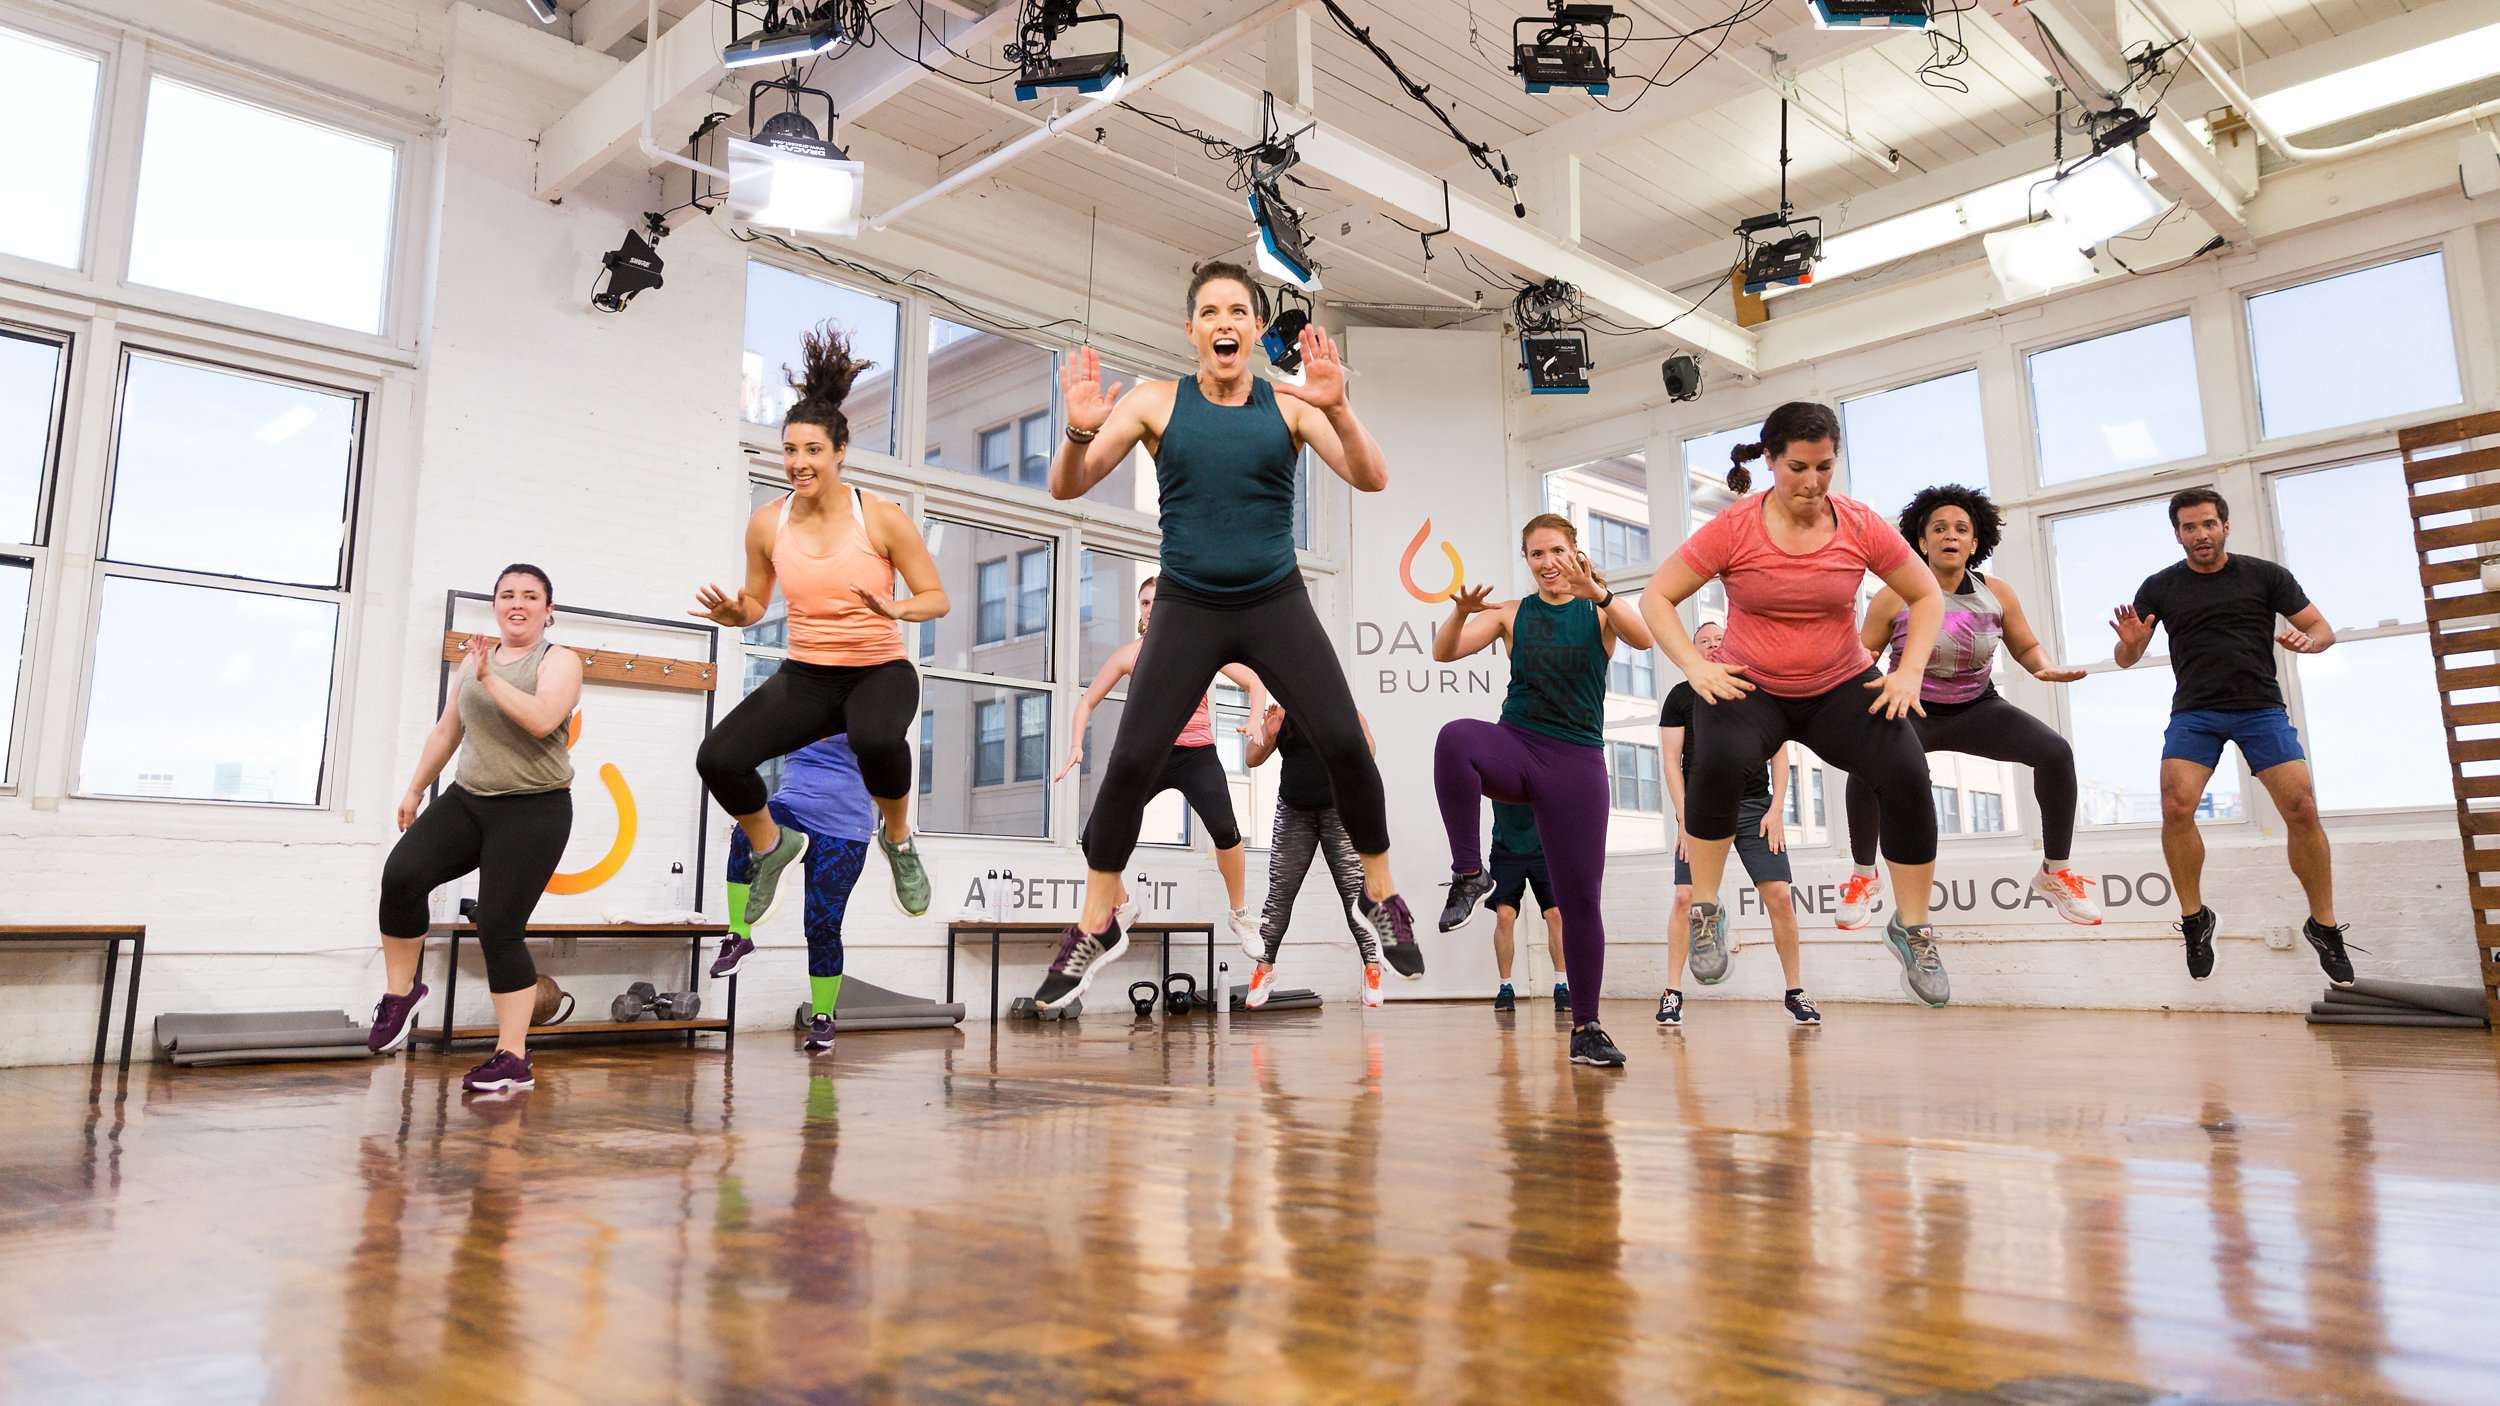 Start Getting Fit with an Easy Zumba Workout